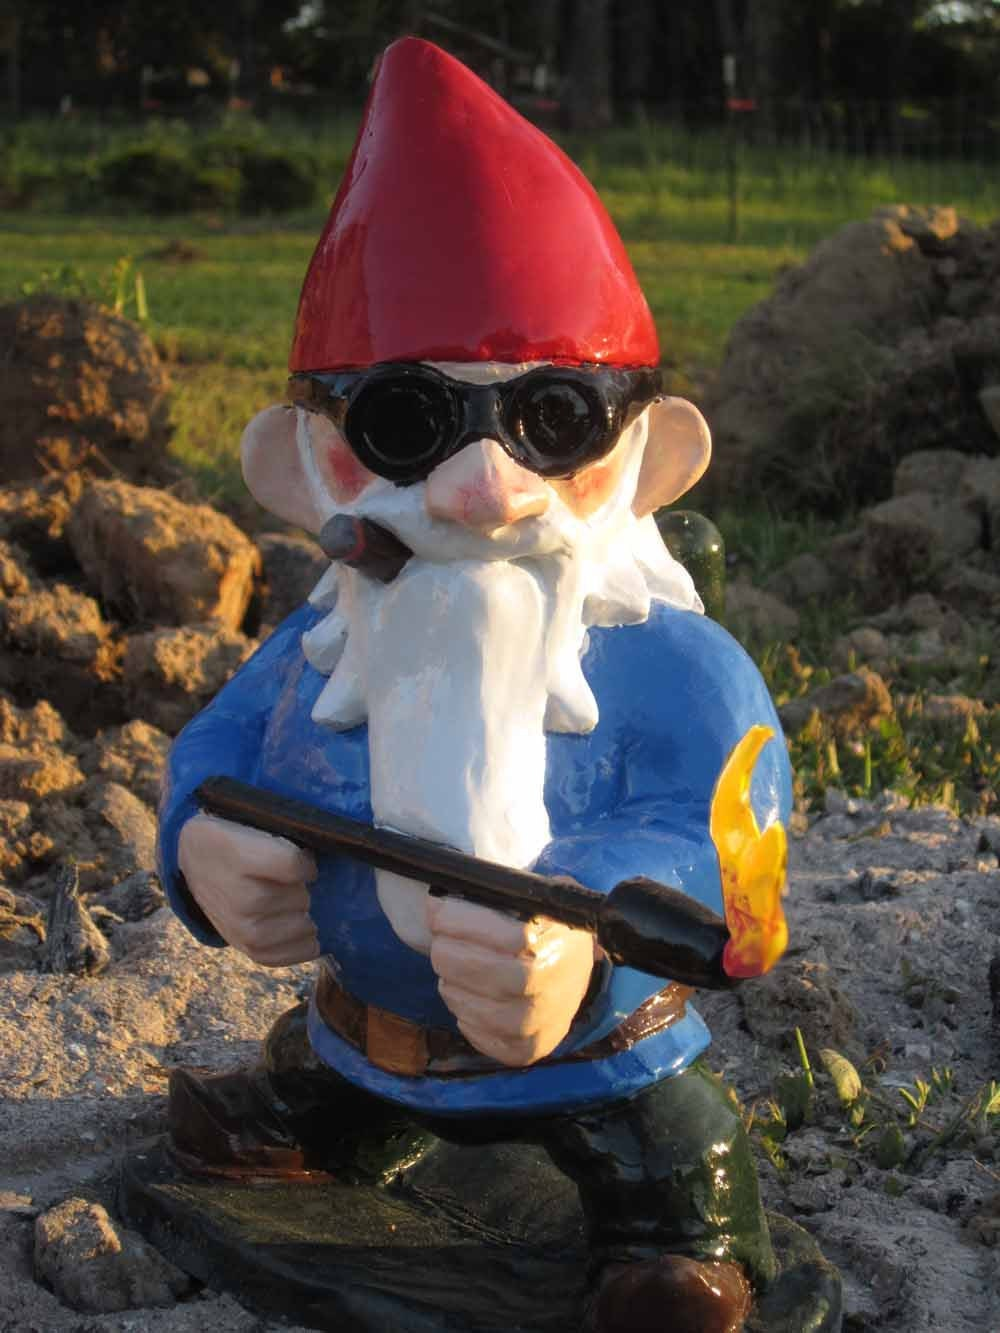 combat garden gnome with flamethrower